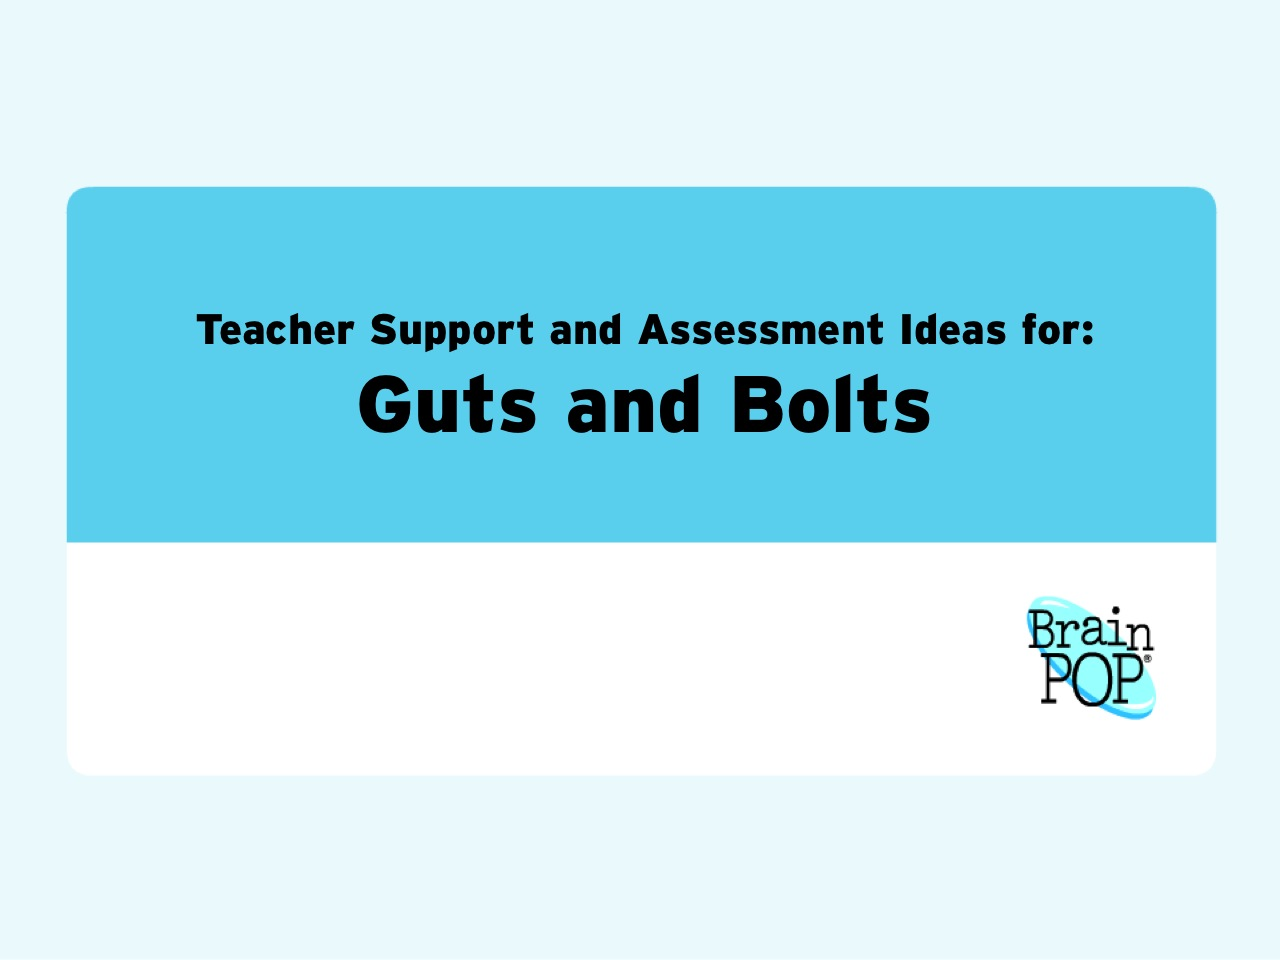 Teacher Resources and Assessment Strategies for Guts and Bolts